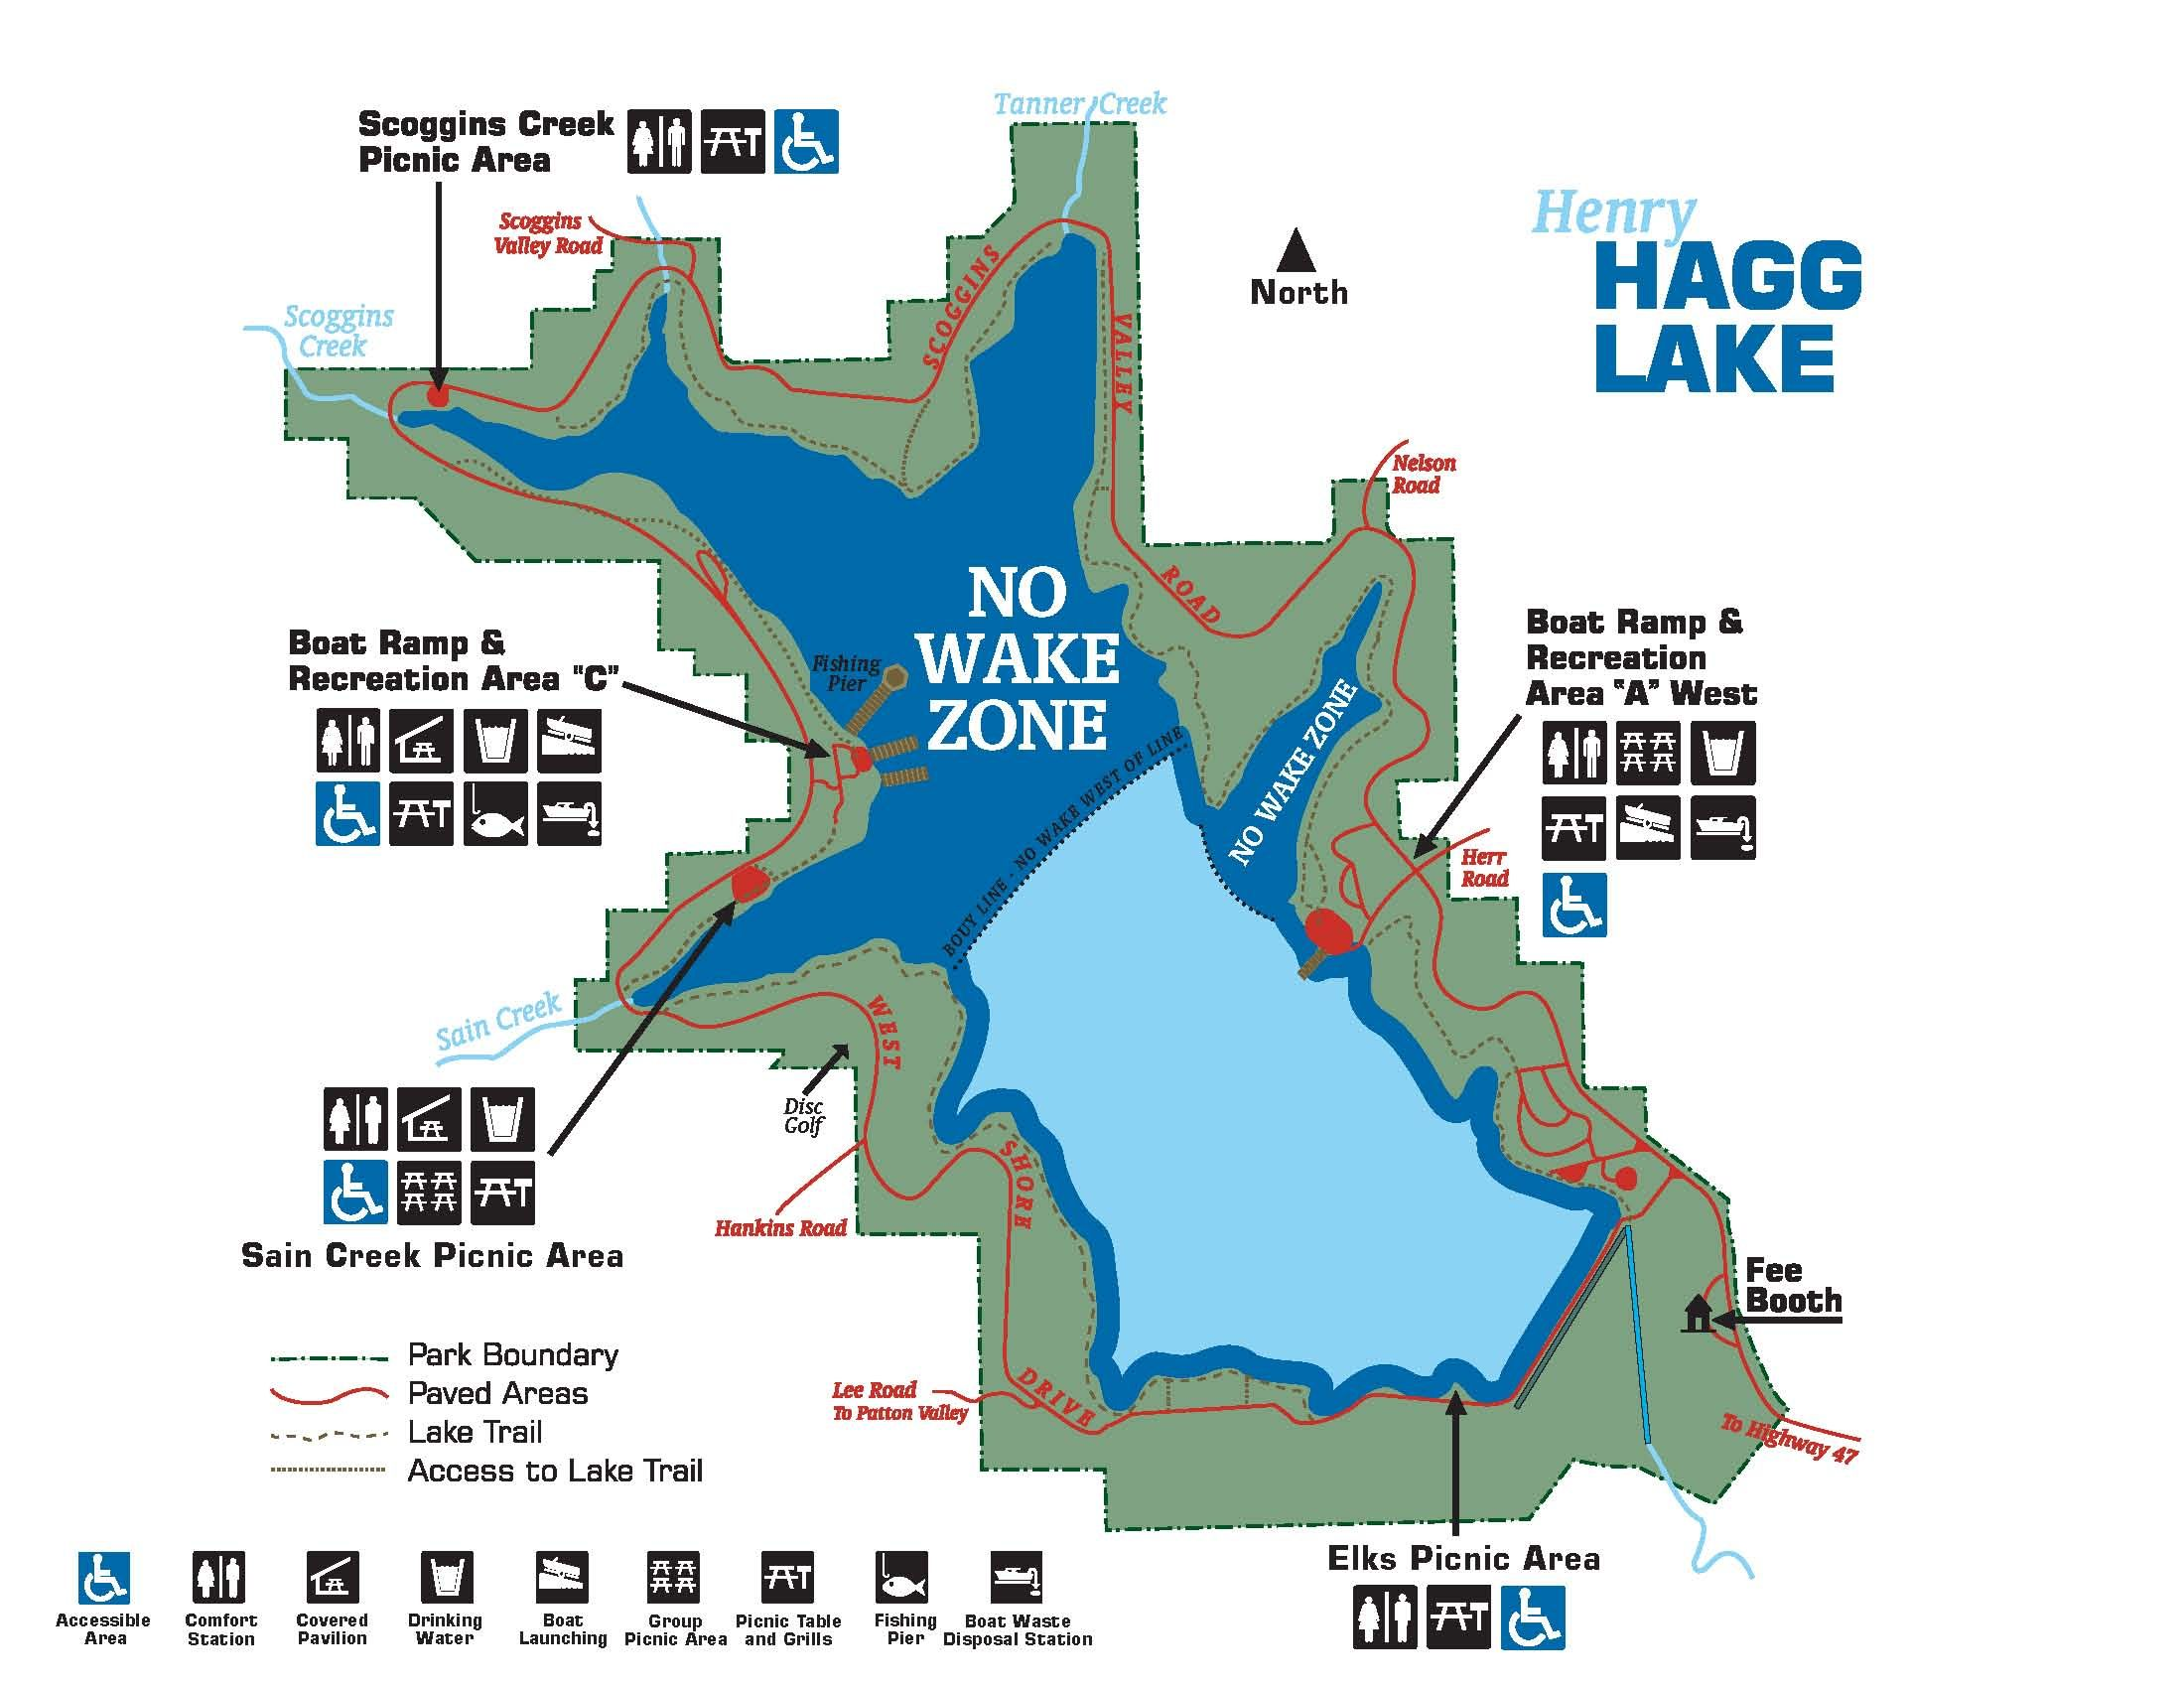 henry hagg lake map Hagg Lake Map With Legend Lake Map Lake Recreation Area henry hagg lake map